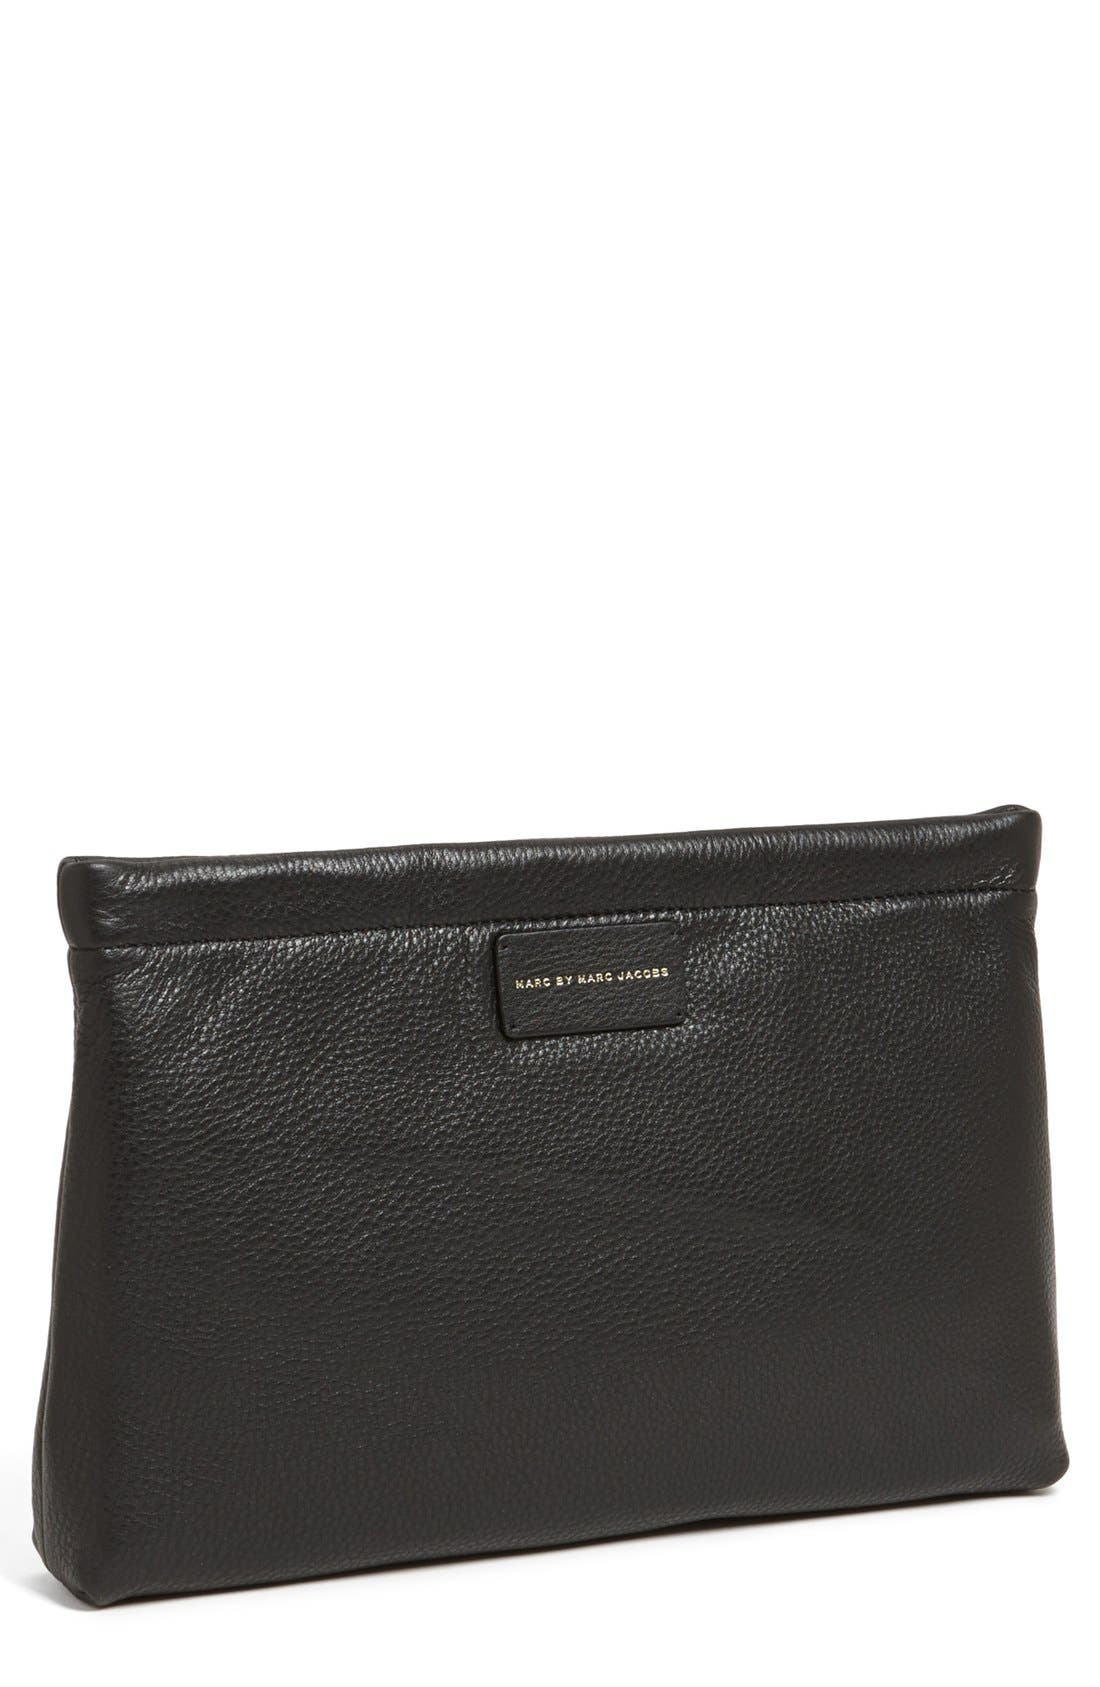 Main Image - MARC BY MARC JACOBS 'Can't Clutch This - Large' Clutch